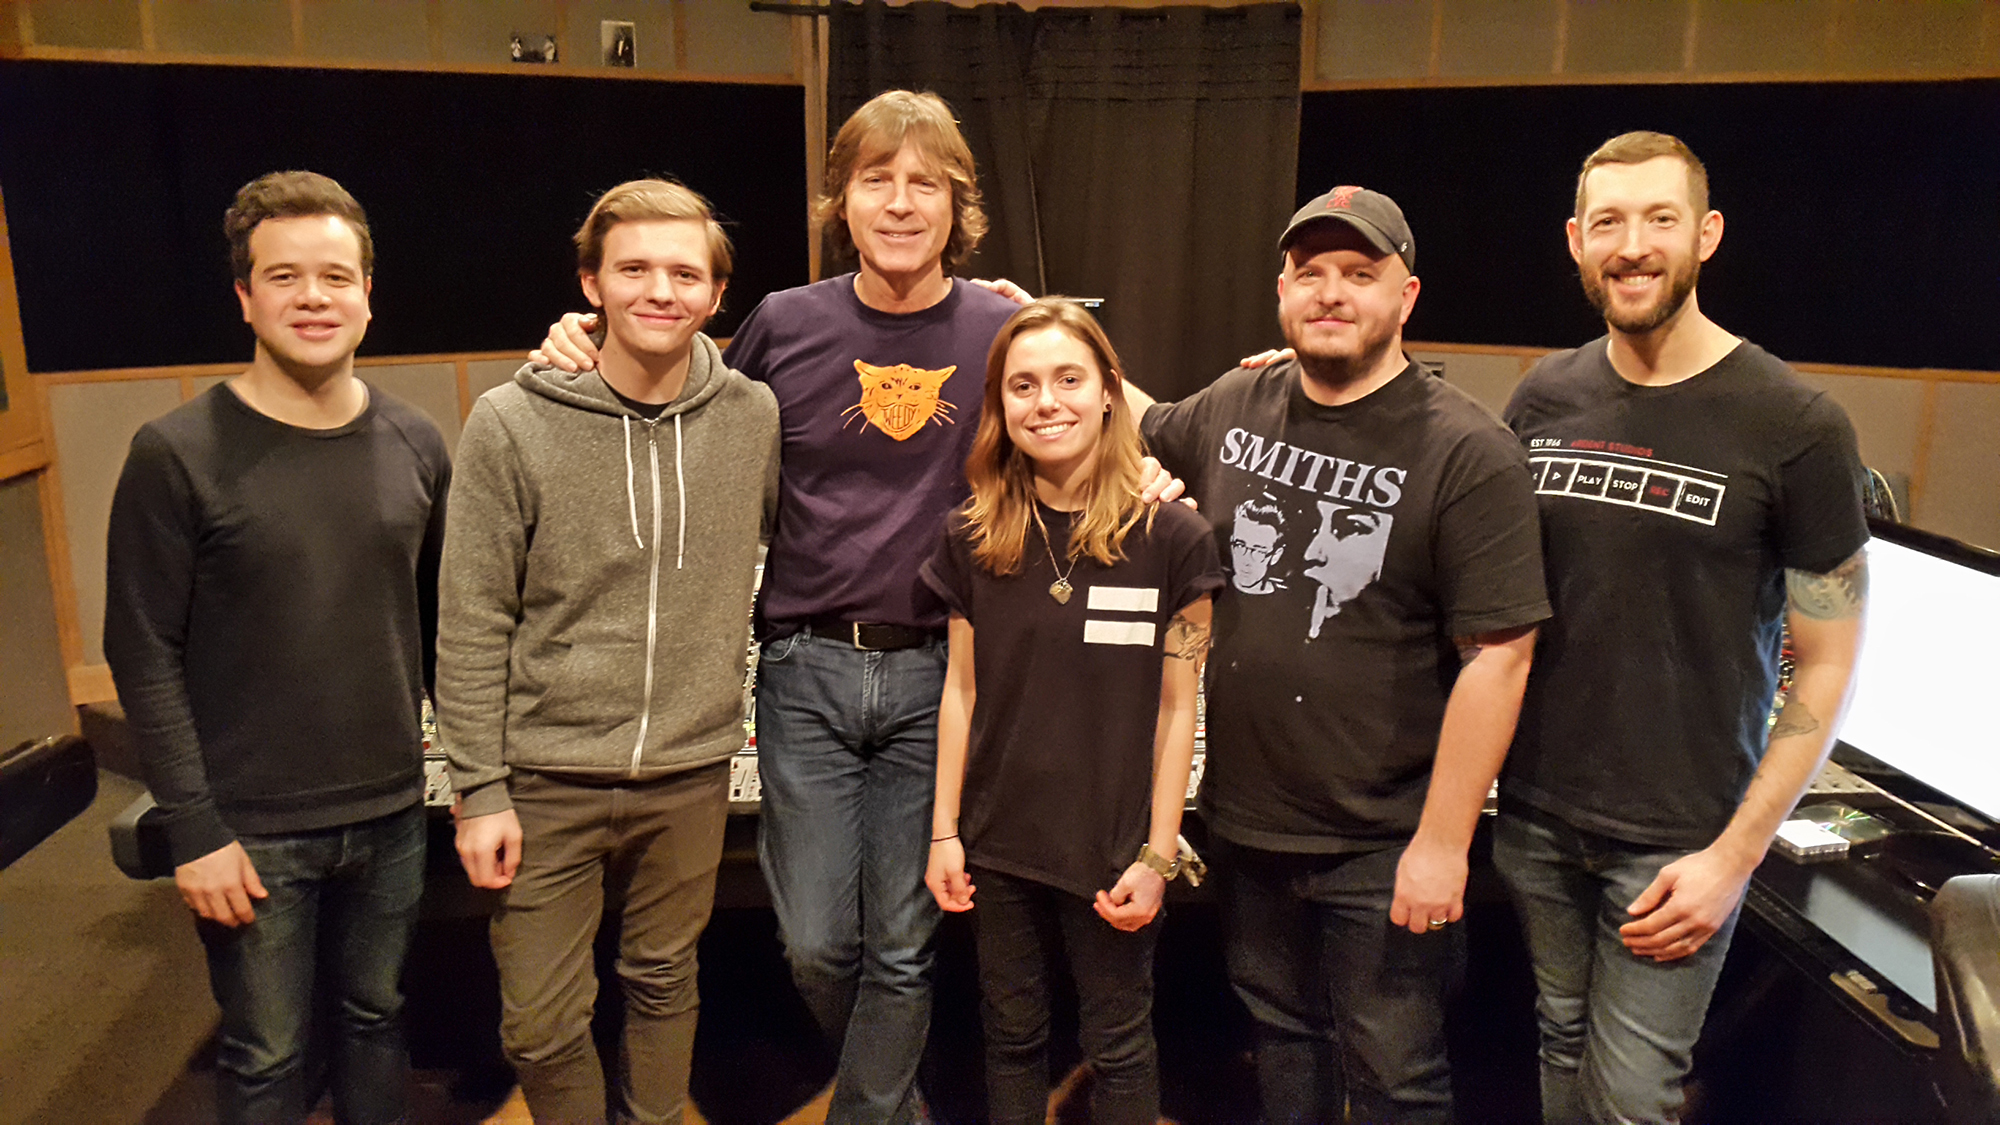 Studio A: Robby Morris (Matador A&R), Calvin Lauber (engineer), Jody Stephens, Julien Baker, Sean Rhorer (manager, Brixton Agency) and Ryan Wiley (Ardent's General Manager)